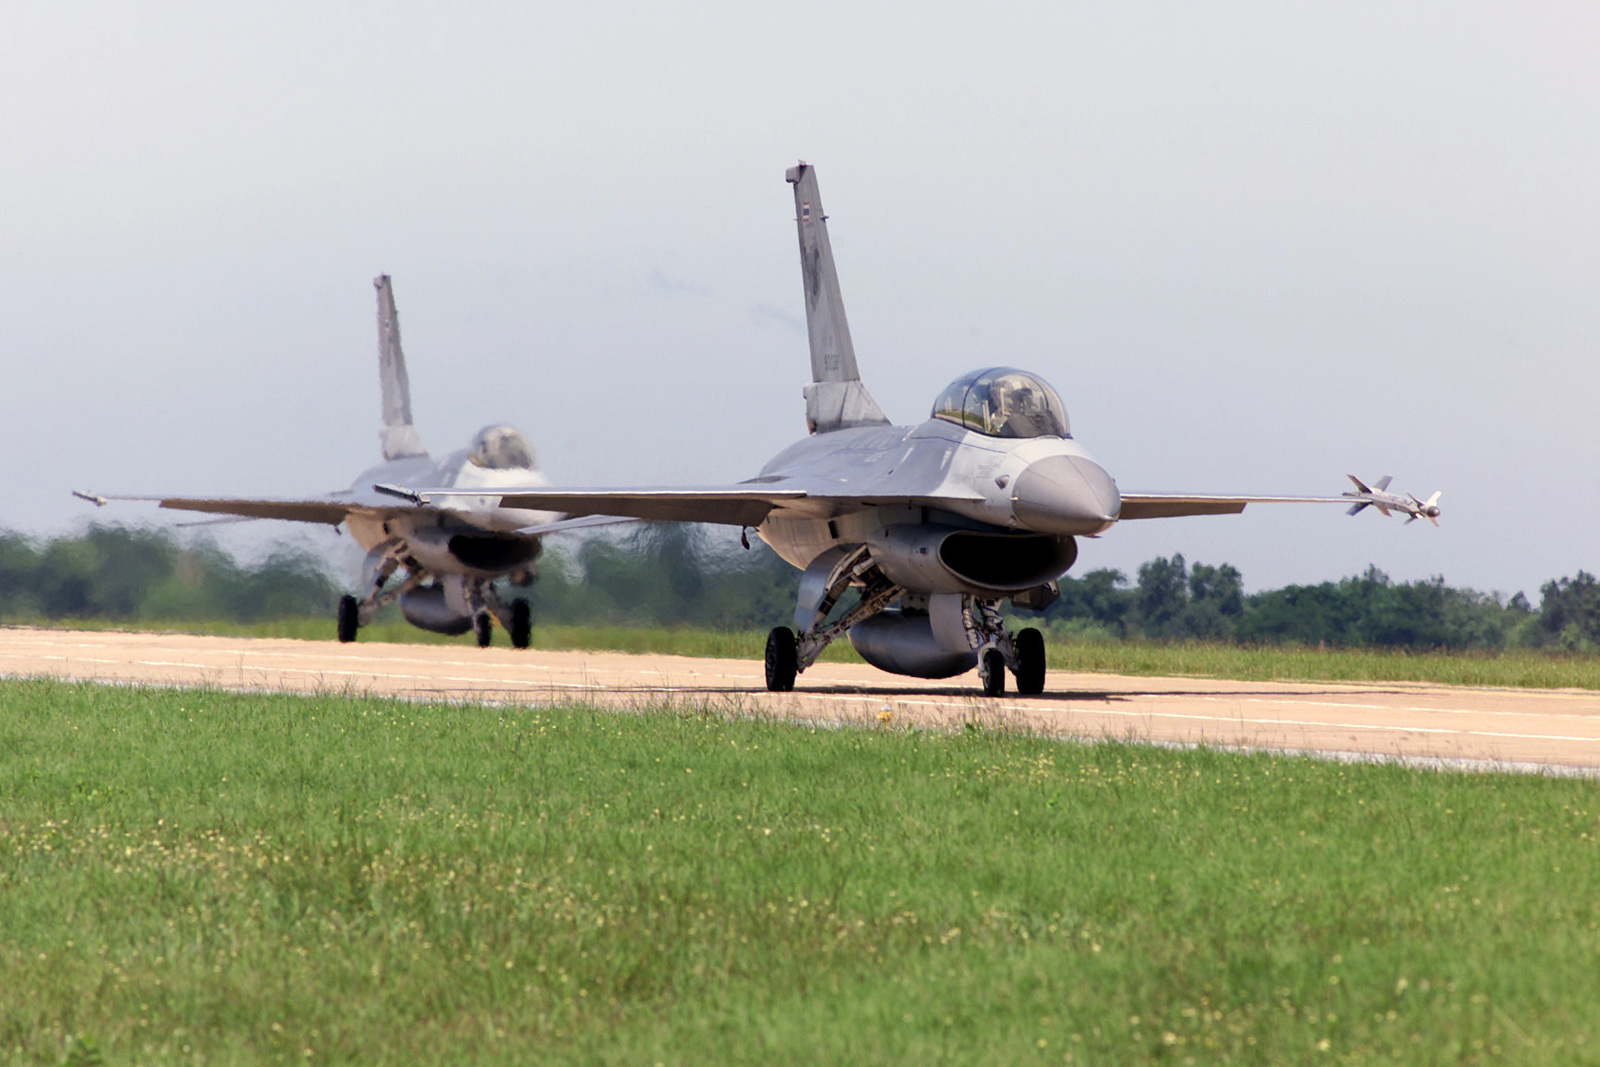 Two Royal Thai Air Force F-16 Fighting Falcon aircraft taxi